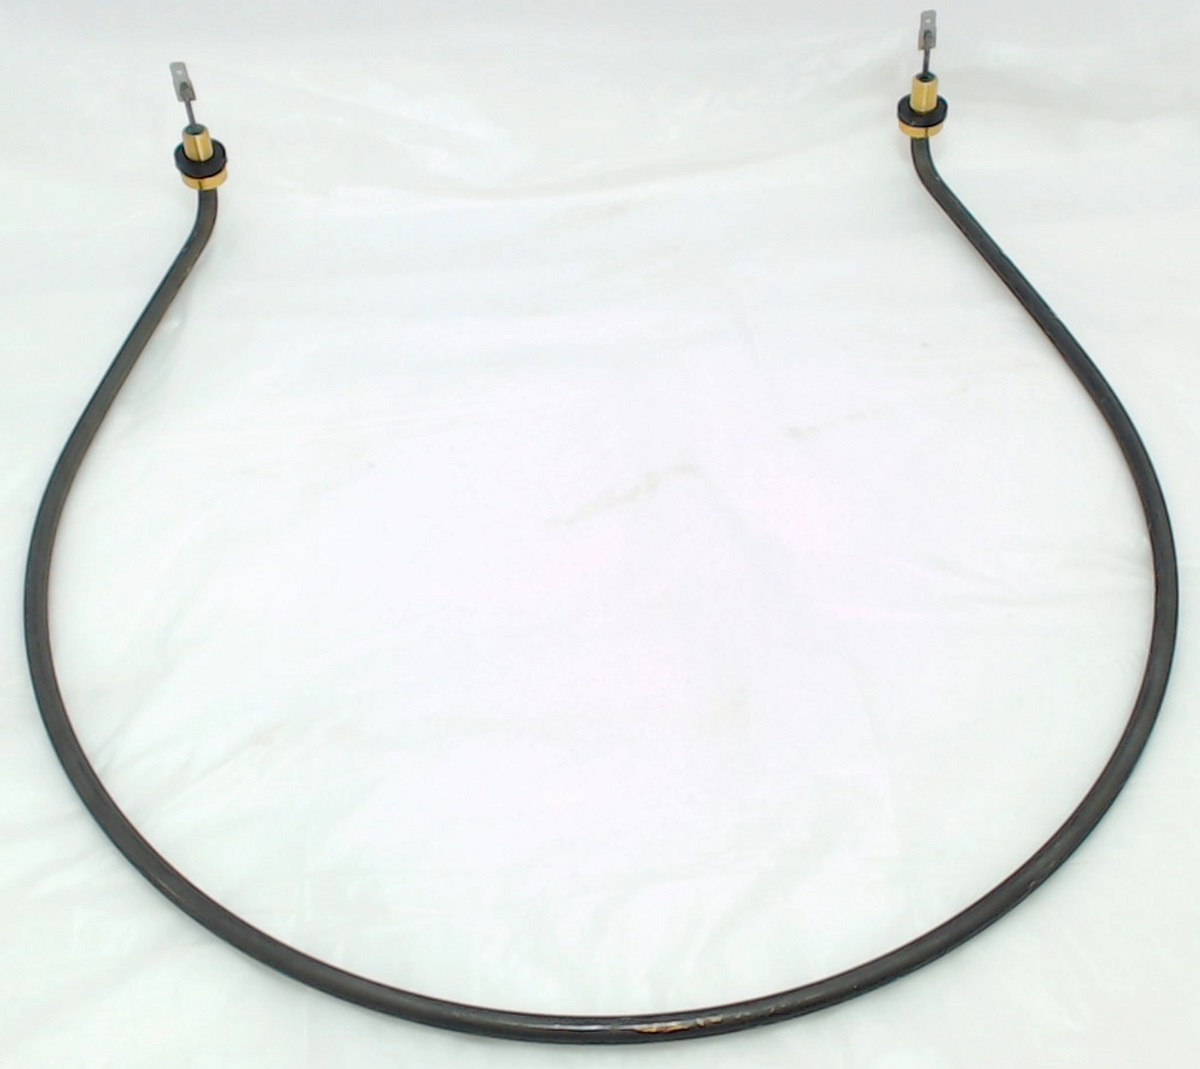 W10518394 dishwasher heating element for whirlpool - Heating element for whirlpool dishwasher ...